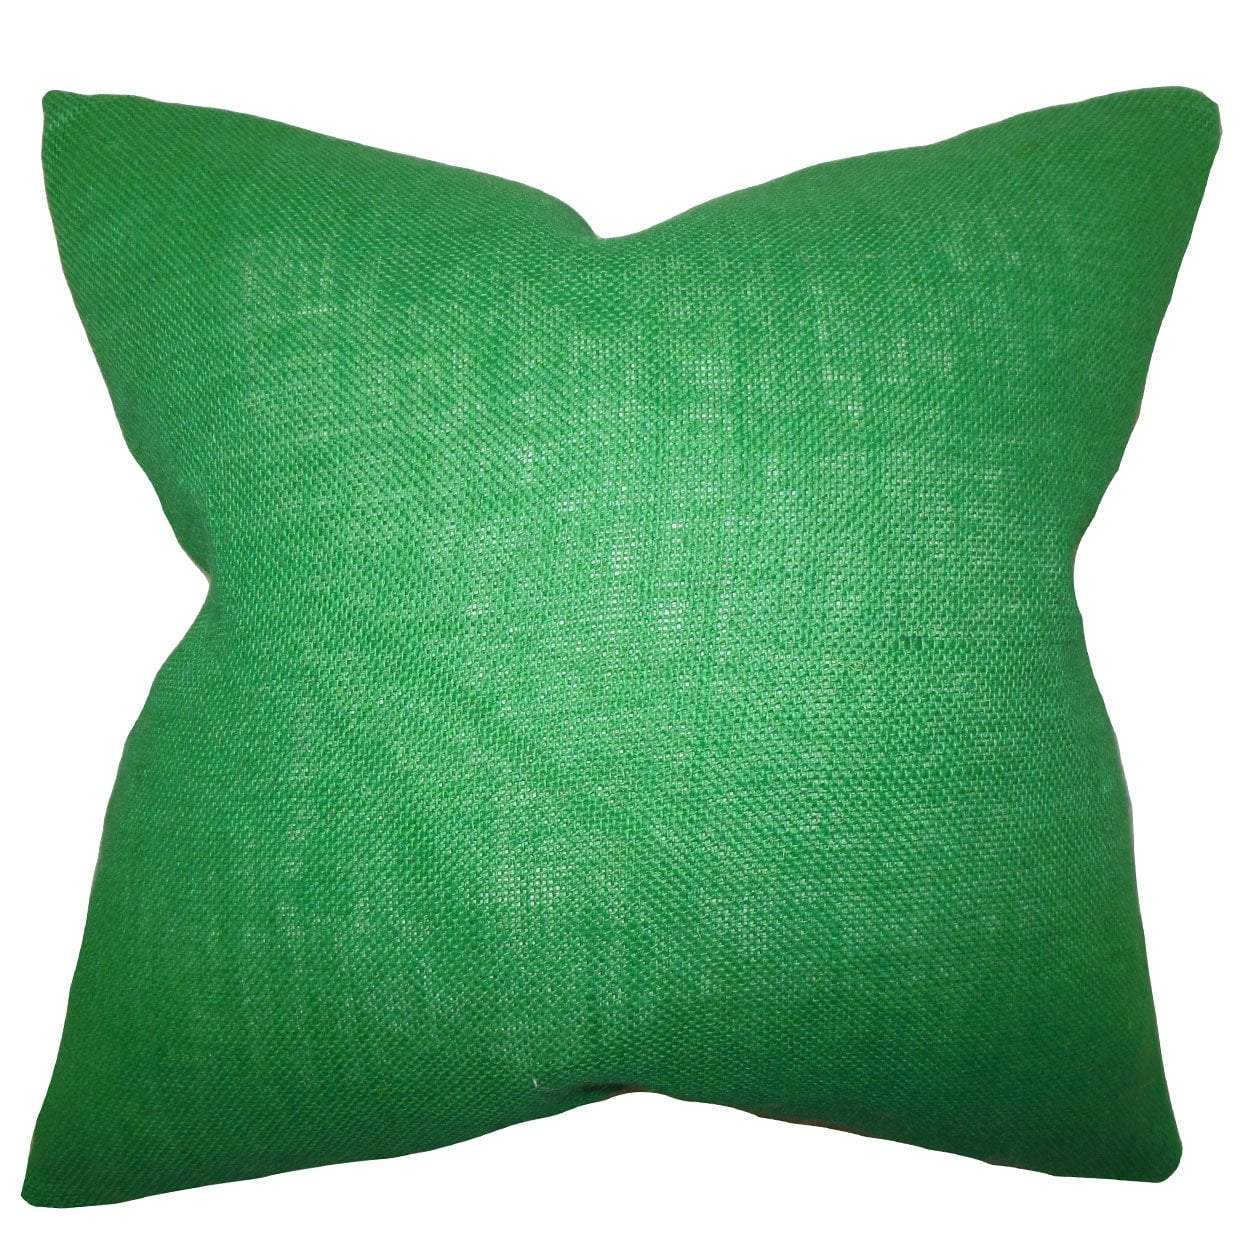 Green Synthetic Solid Contemporary Throw Pillow Cover